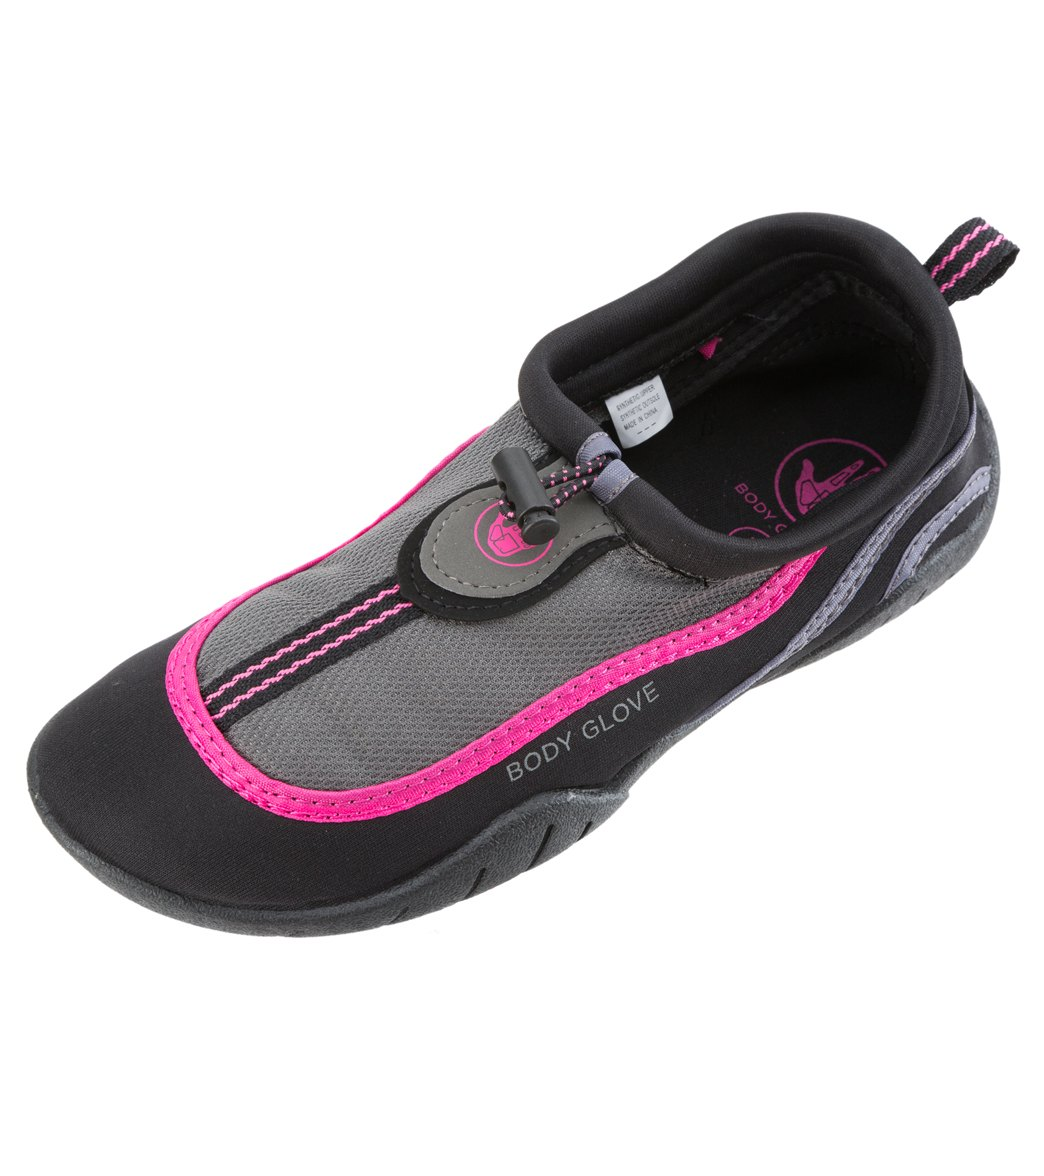 5bb9476efb12 Body Glove Women s Riptide III Water Shoe at SwimOutlet.com